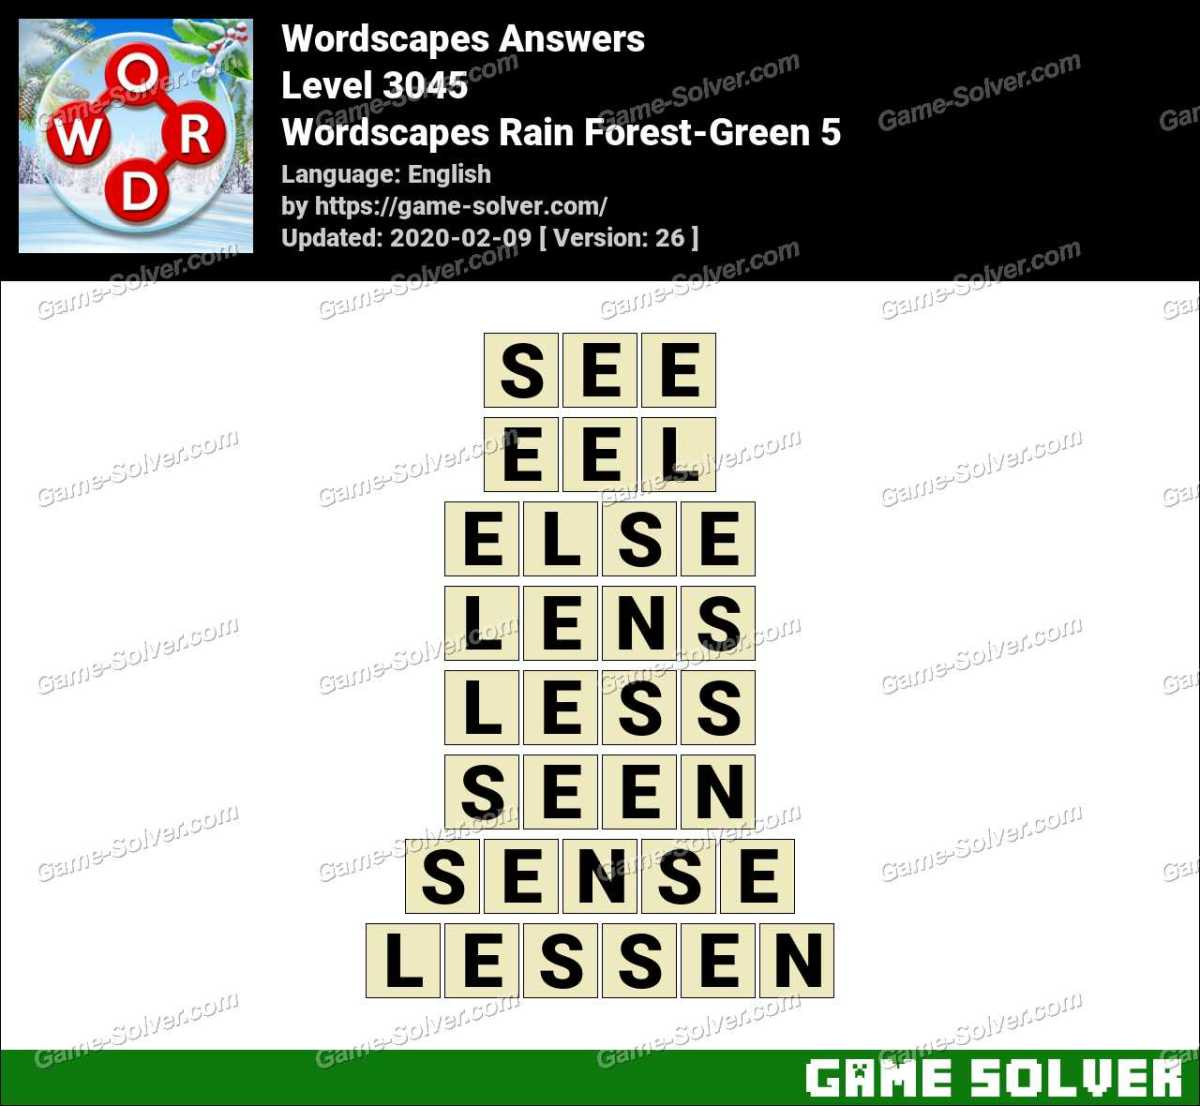 Wordscapes Rain Forest-Green 5 Answers • Game Solver